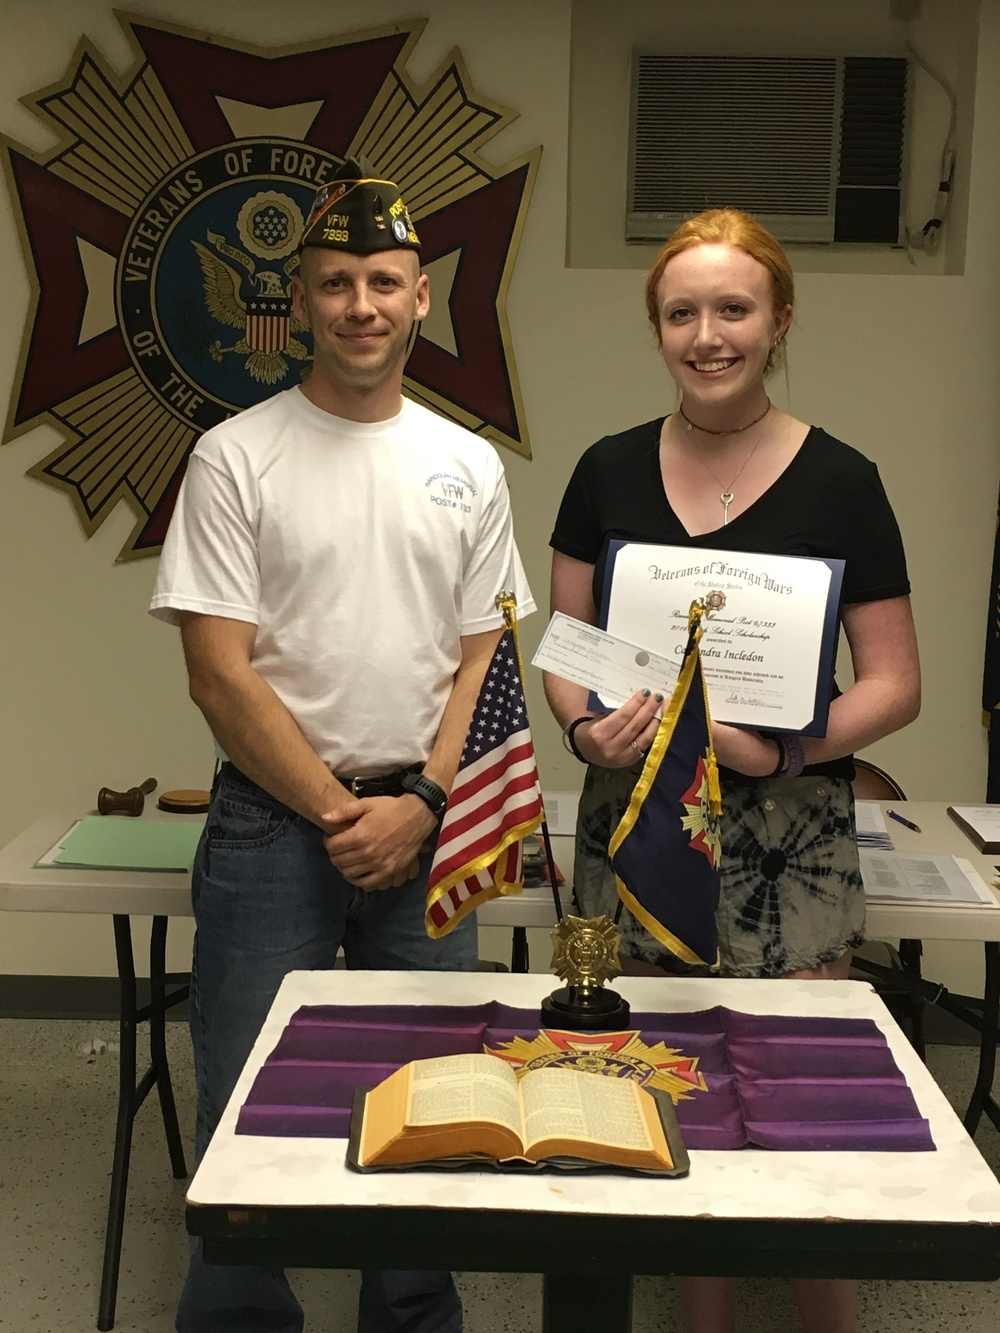 Commander Scott presents Cassandra Incledon the Randolph VFW  2016 Female High School Senior scholarship award.   Cassandra will be attending Rutgers University and studying psychology.